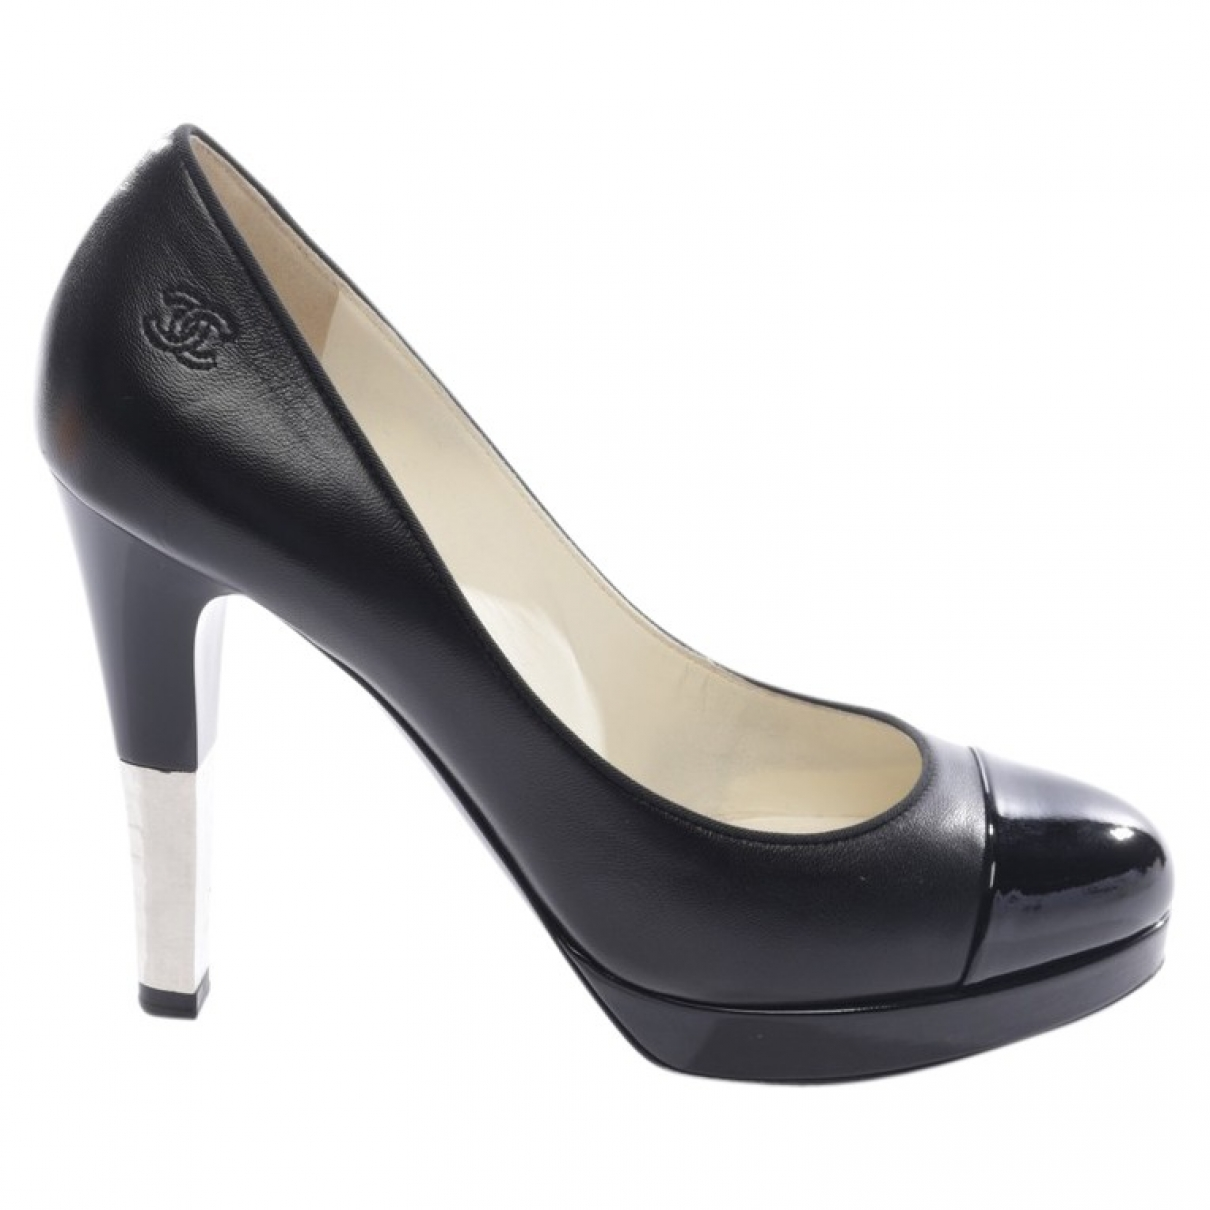 Chanel \N Black Leather Heels for Women 39 EU